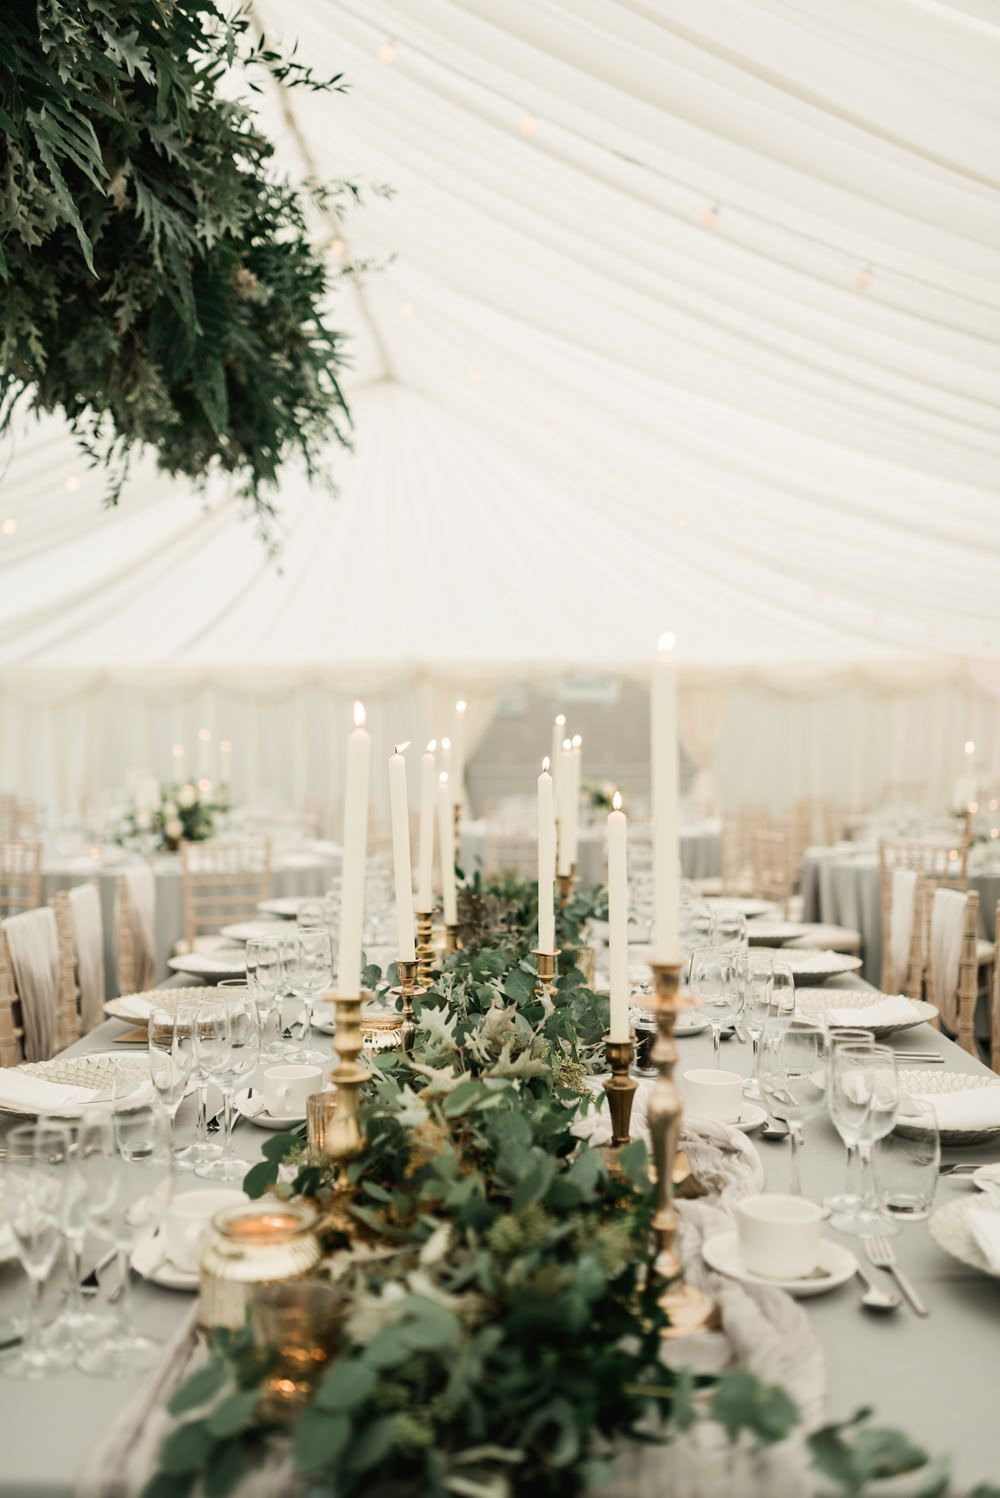 Elegant Grey, Green, White & Gold Black Tie, Marquee Wedding at Tullyveery House N. Ireland with Decor & Styling by Mood Events